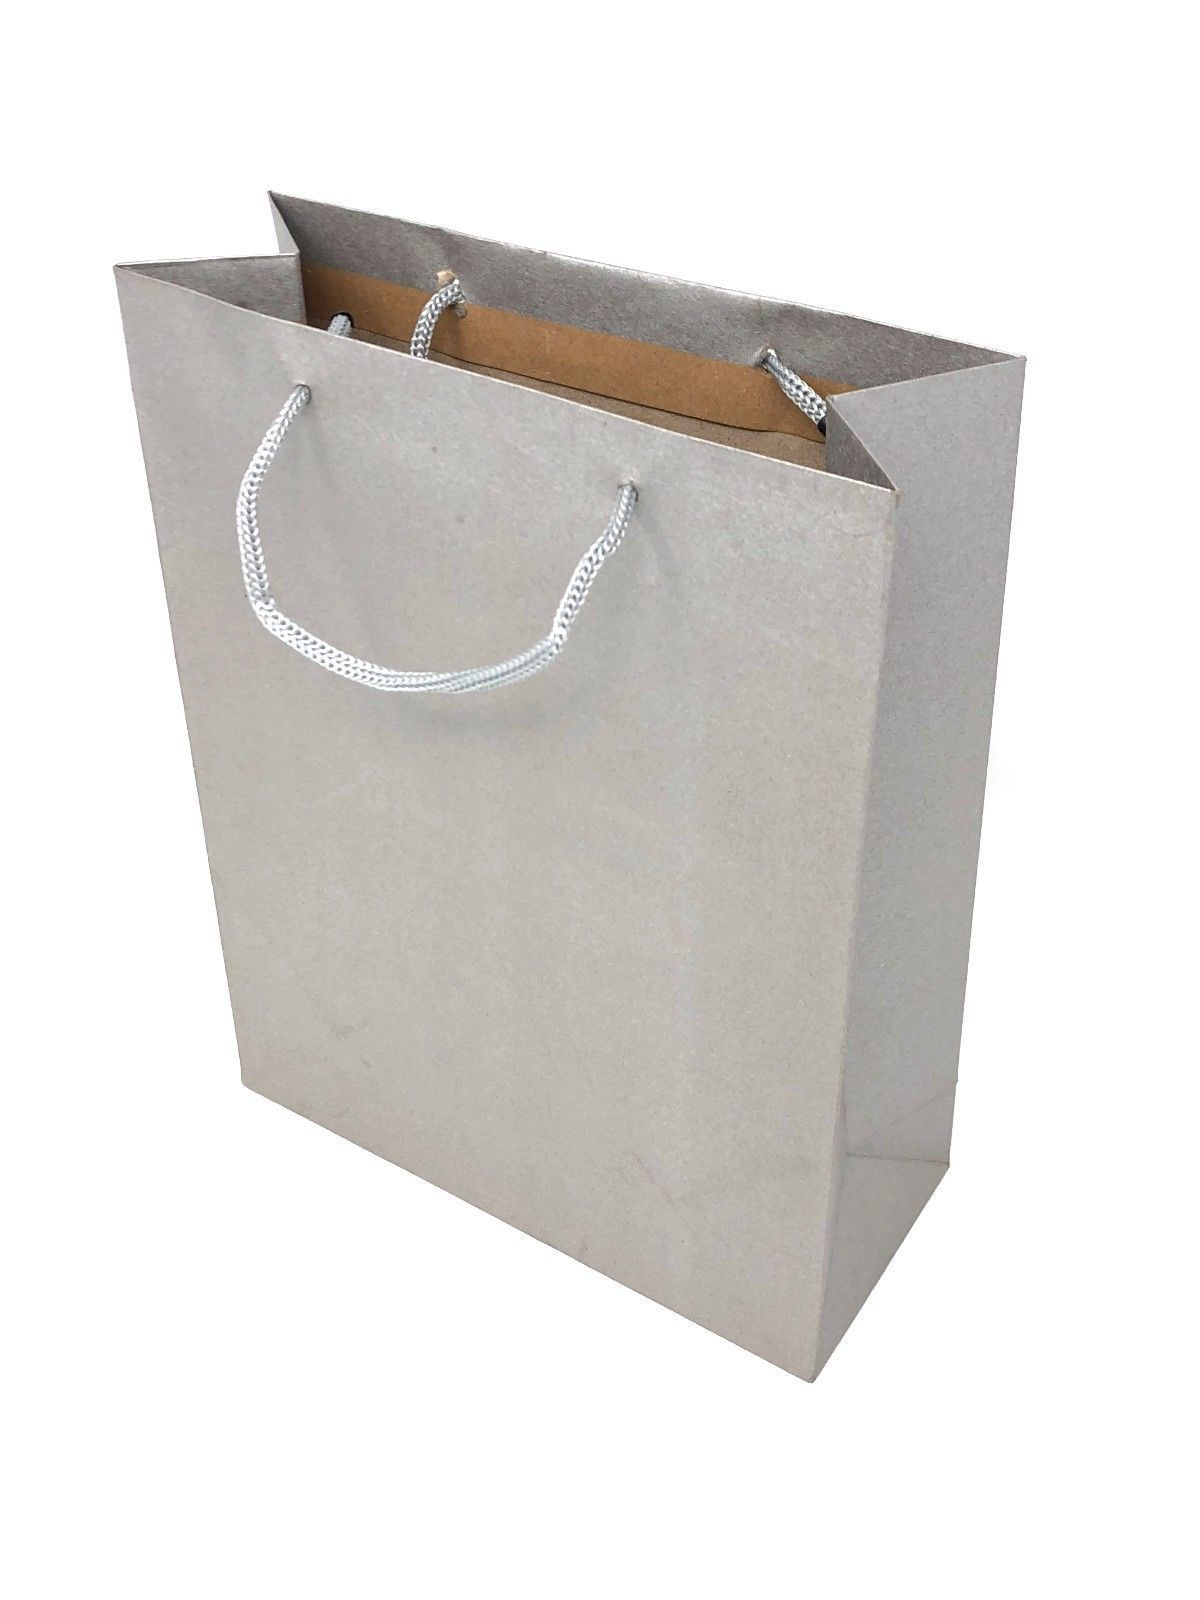 Details About 12 Pack Gift Bags Corded Handles Black Silver Whole Kraft Paper Gifts Bulk